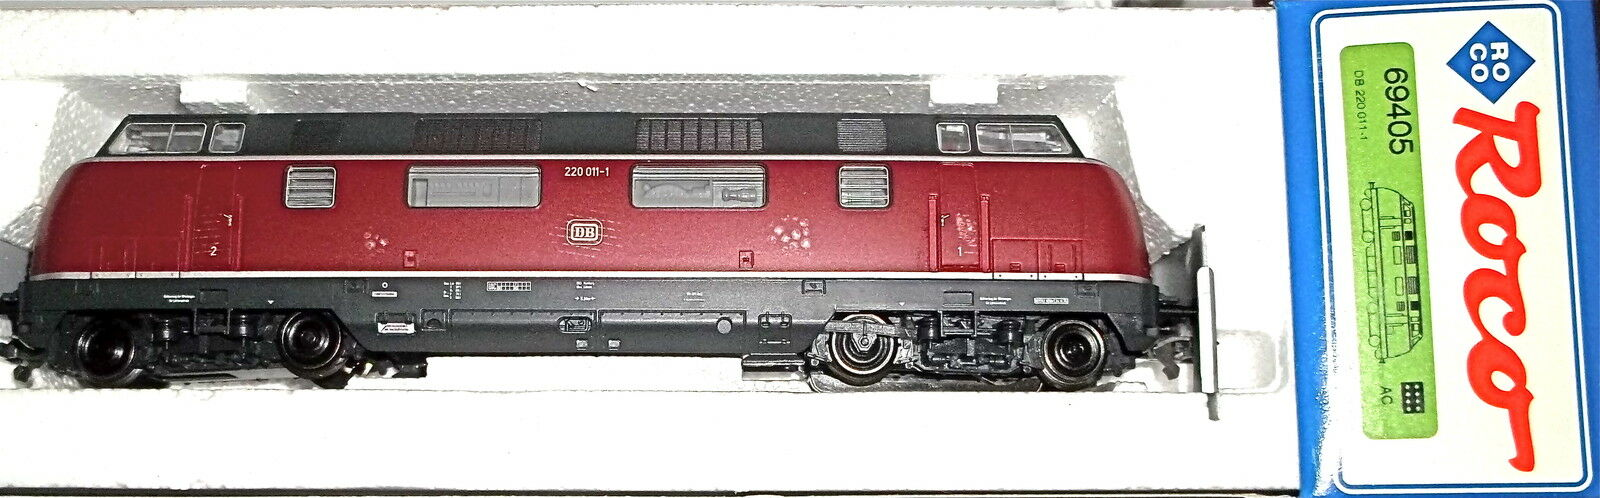 220 011 1 Diesel Locomotive DB DIGITAL for Märklin AC Roco